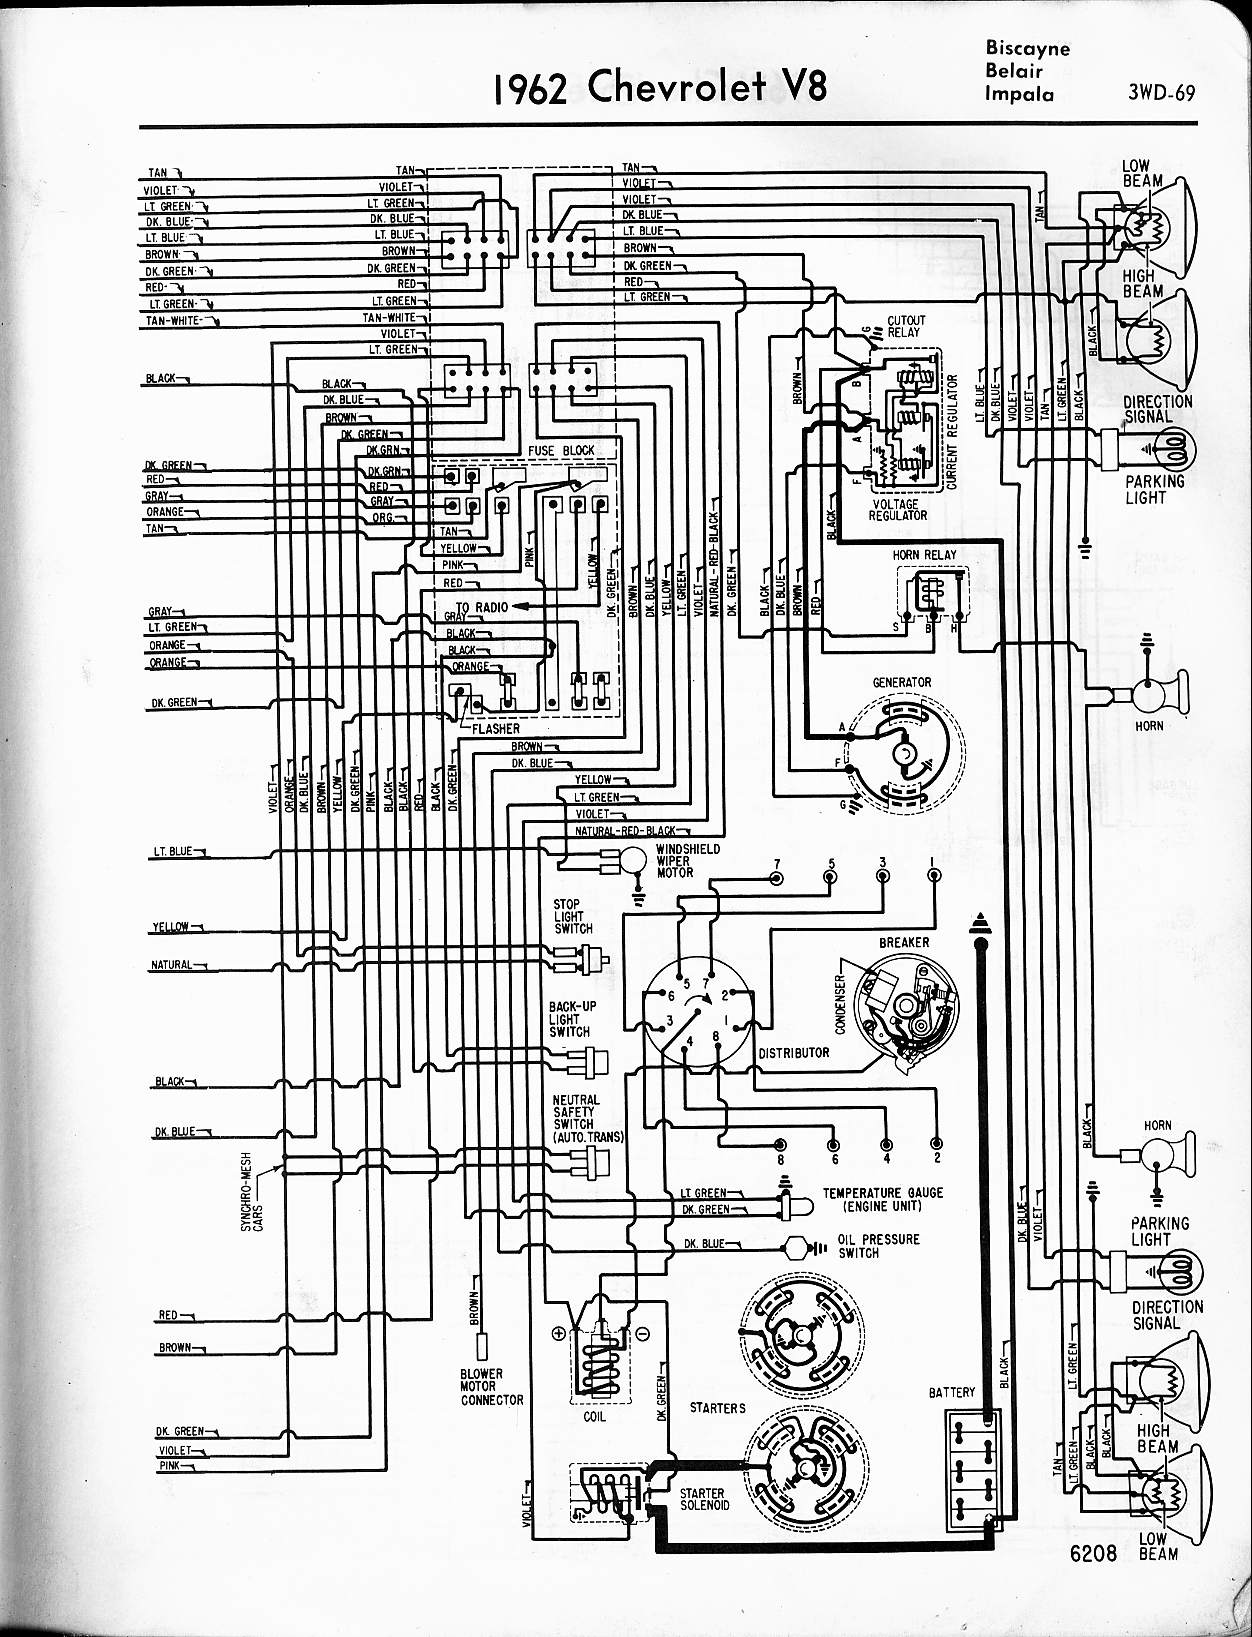 1963 Corvair Wiring Diagram Simple Guide About Galaxie 1962 Impala No Electrical Power Chevytalk Free